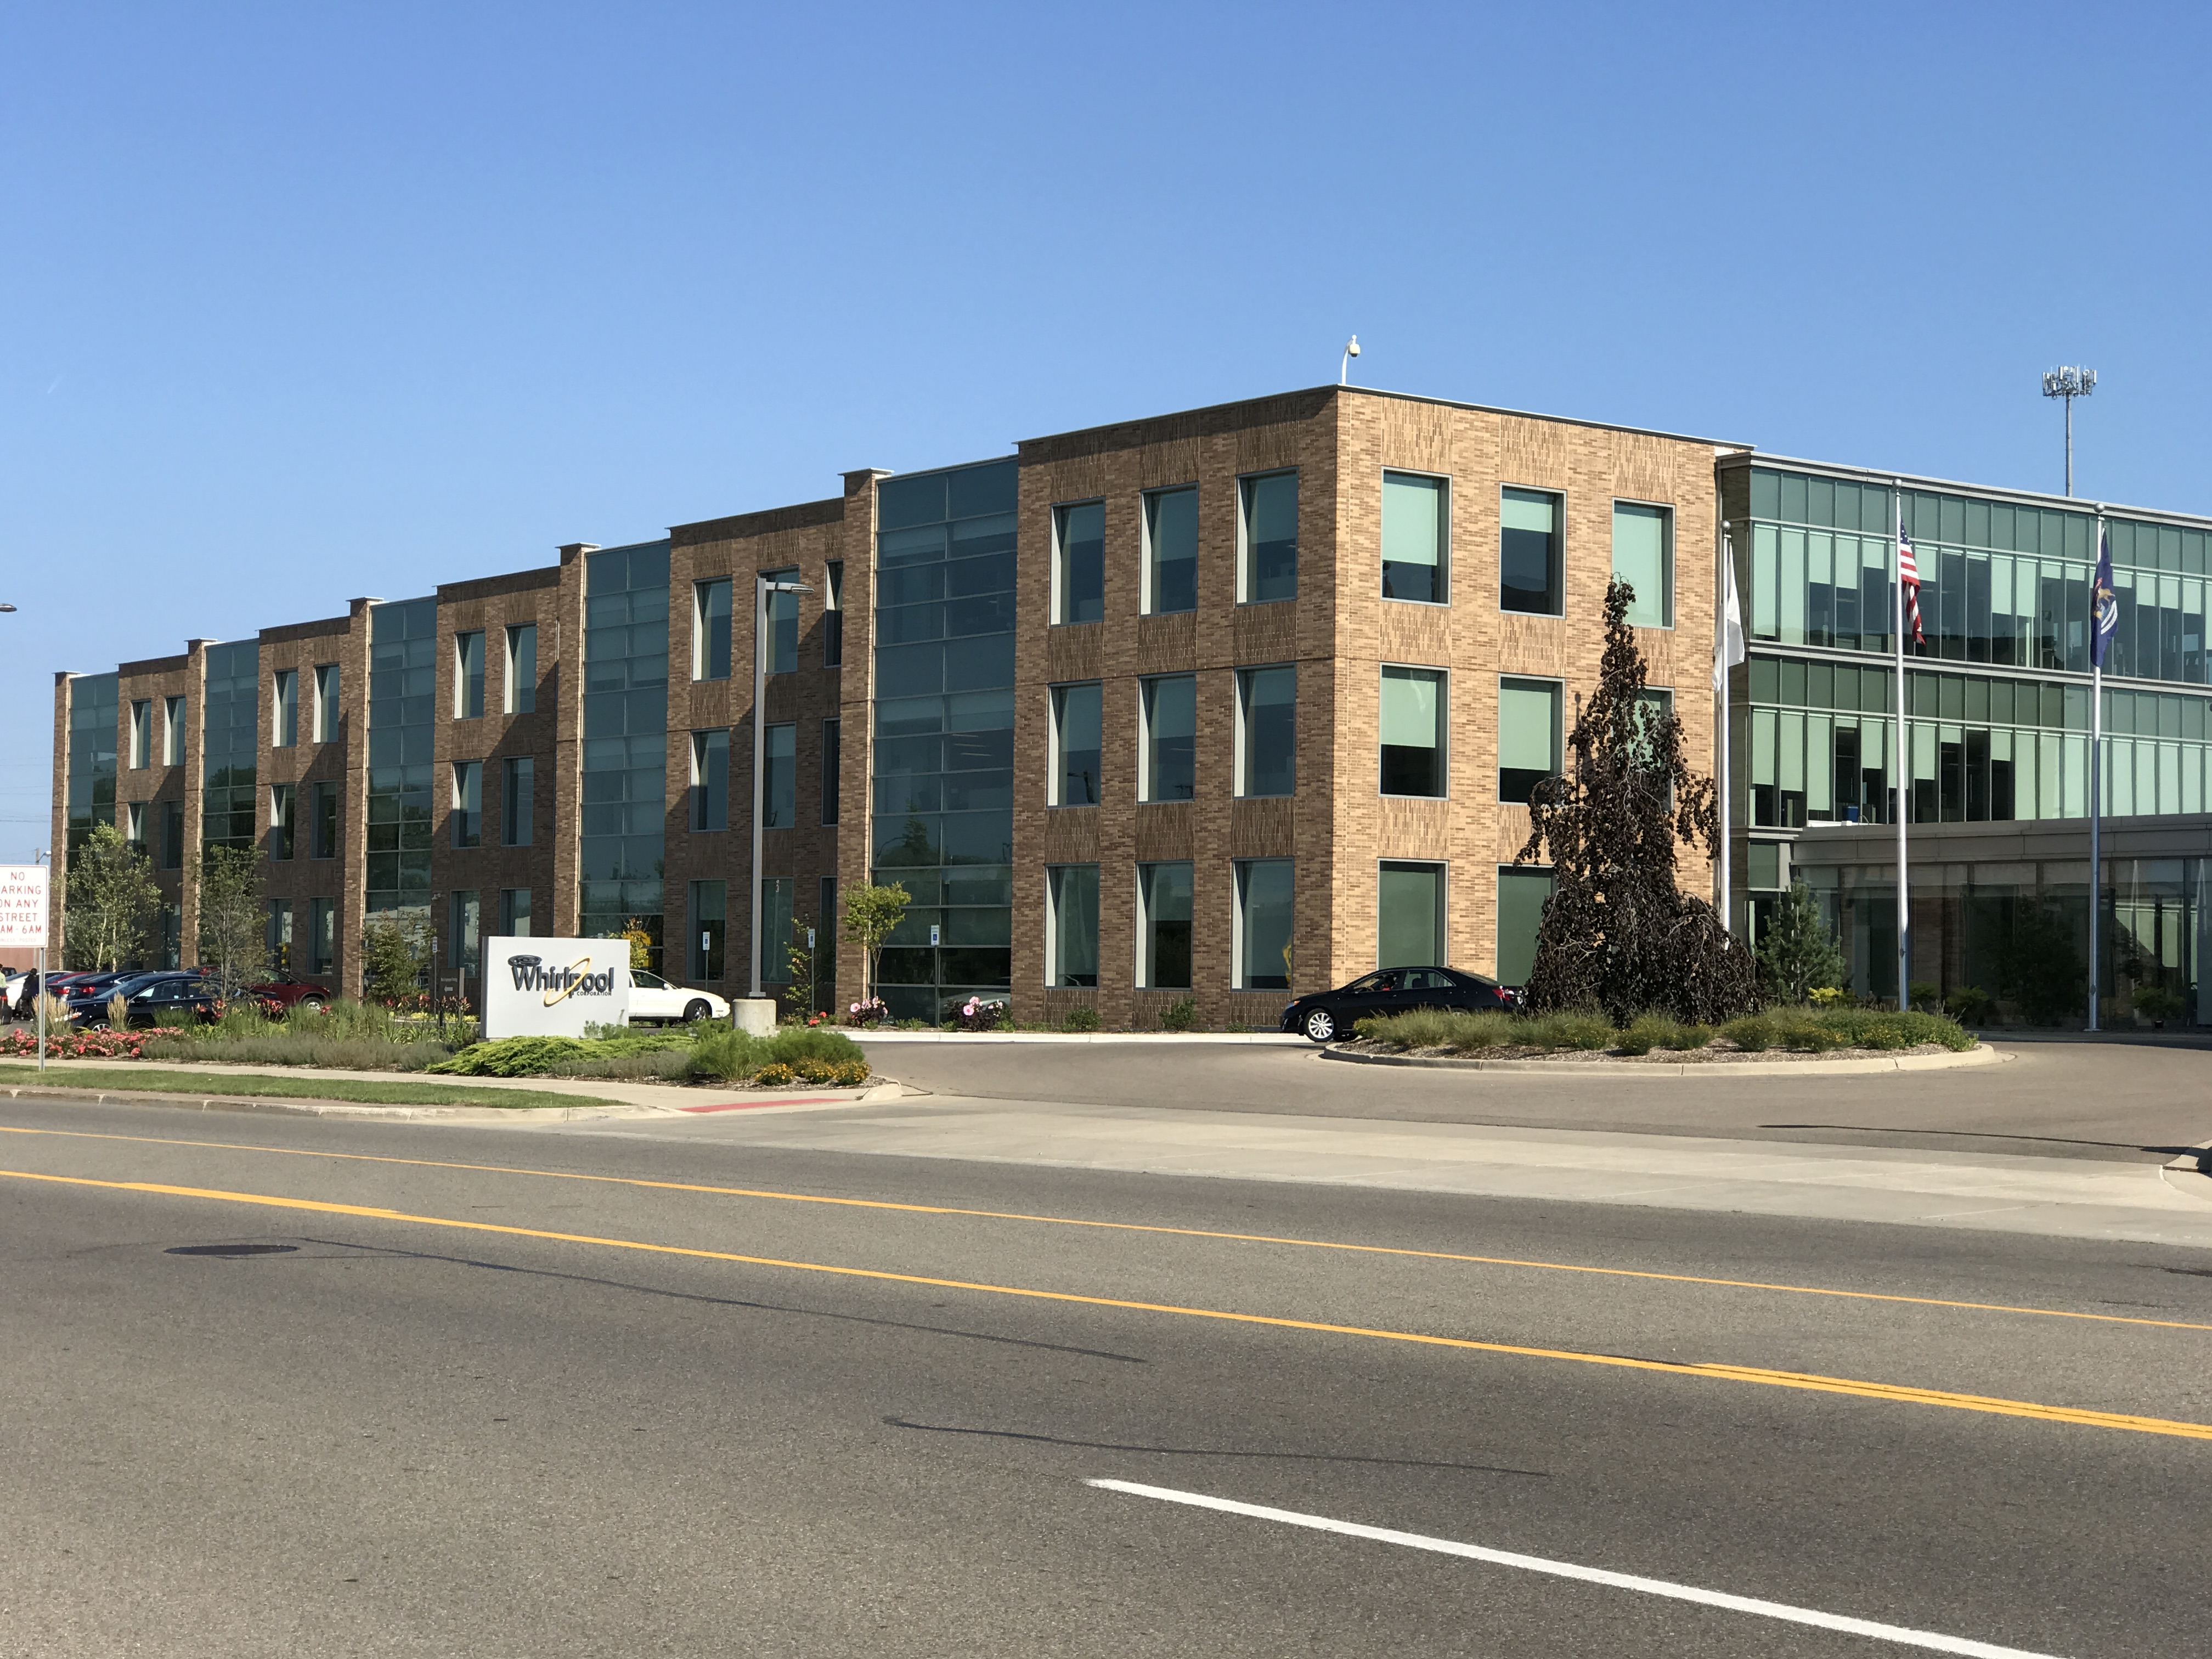 Whirlpool Corporation Awarded Gold Silver Leed Green Building